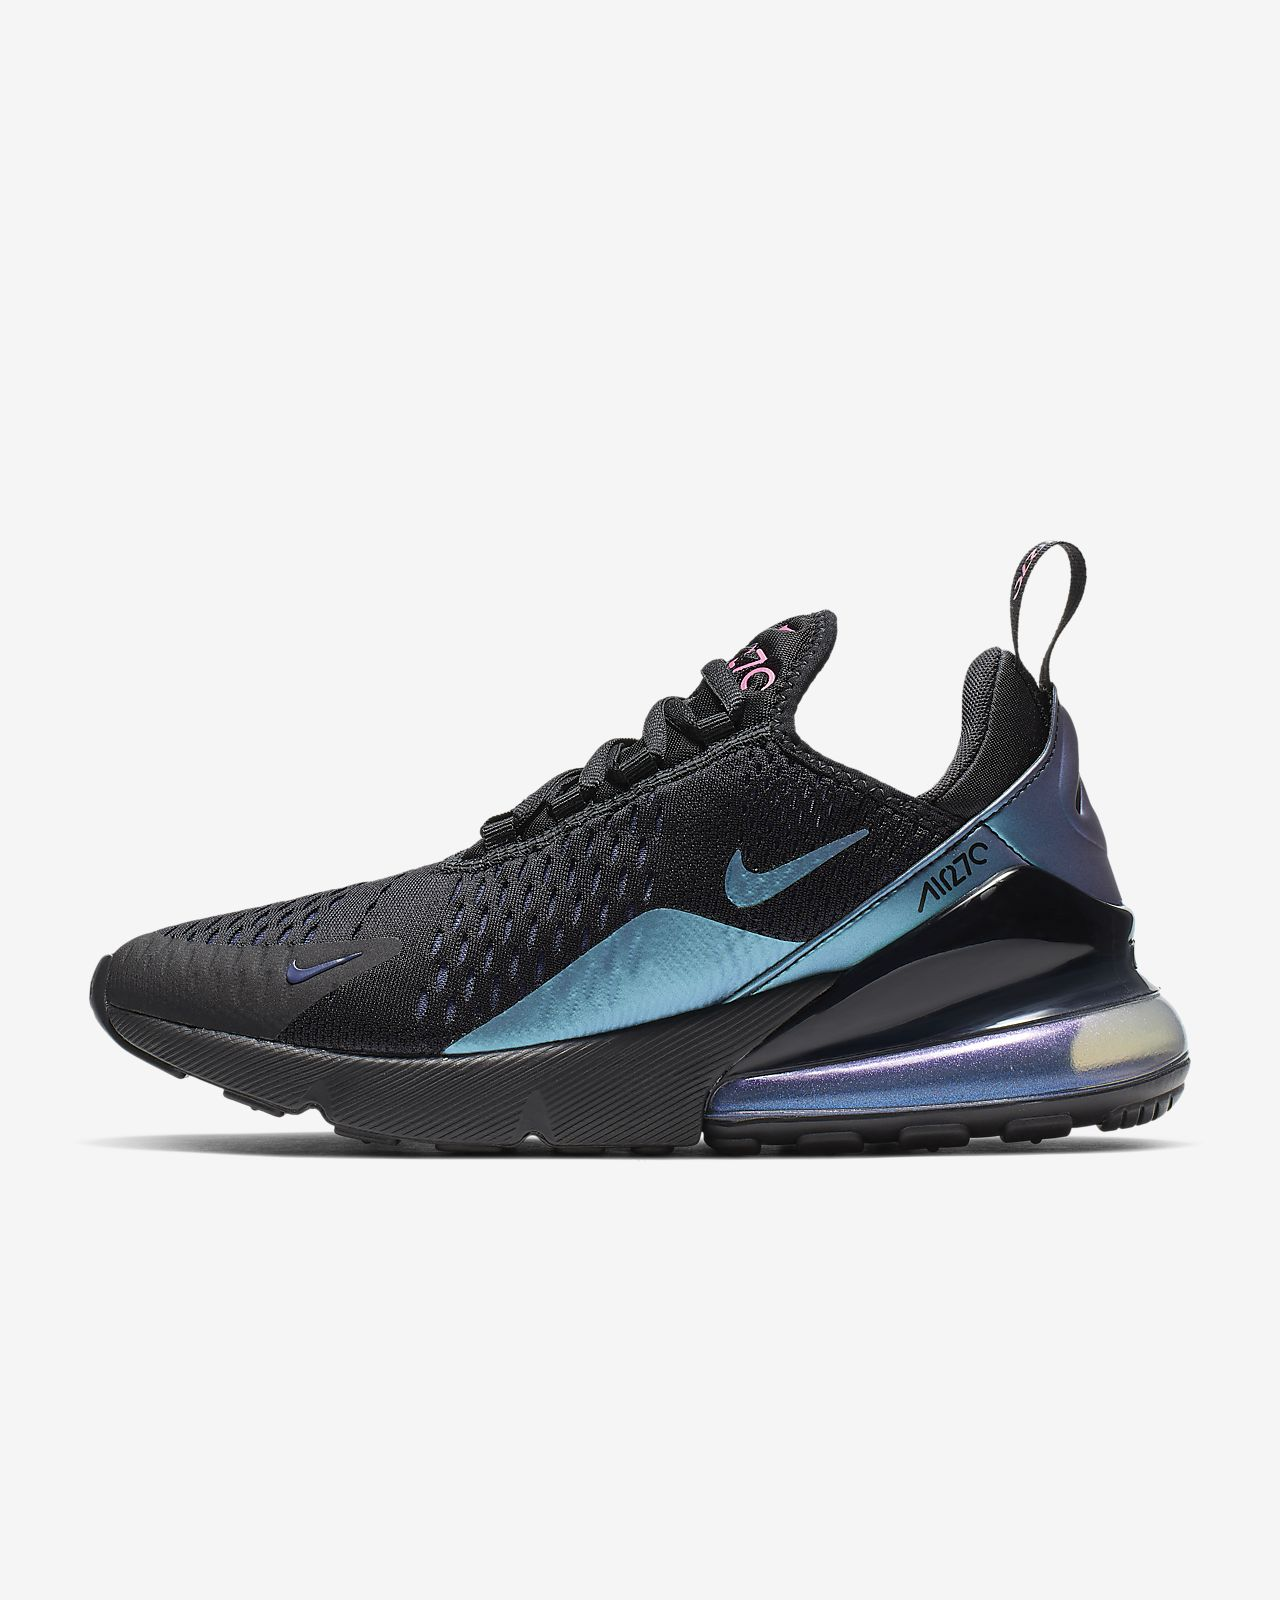 c52d403d78d Nike Air Max 270 Women s Shoe. Nike.com GB